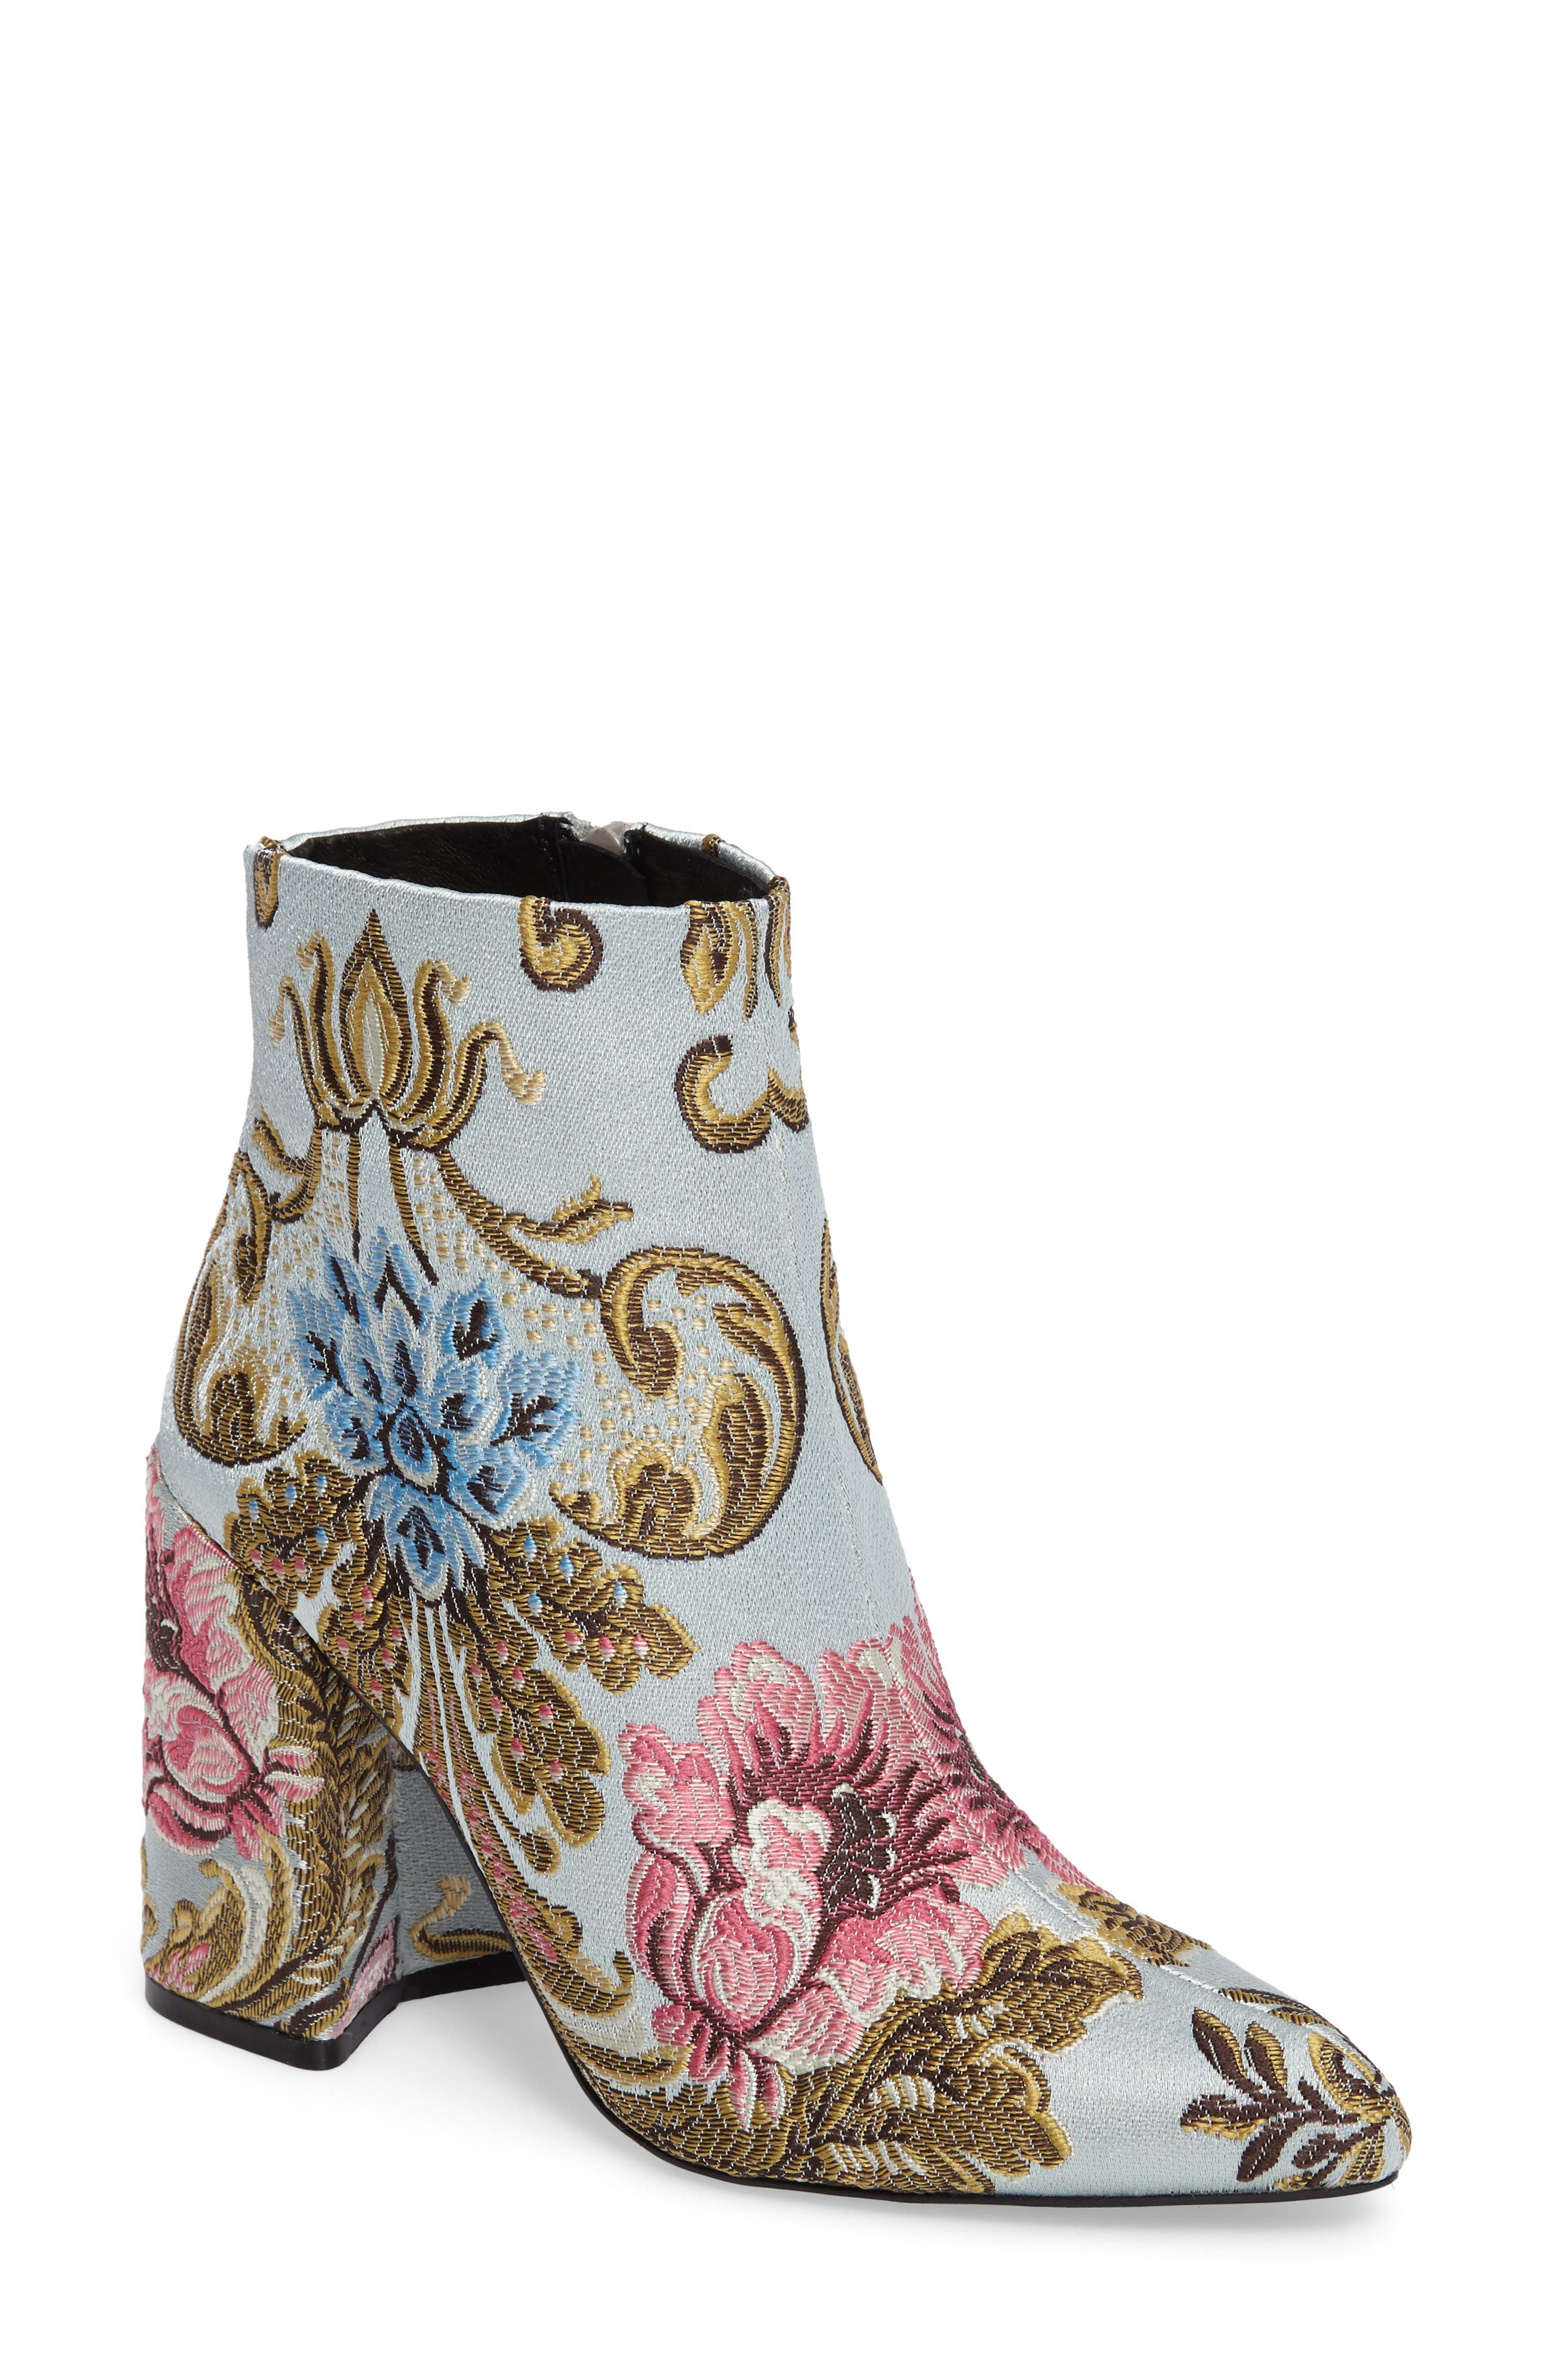 Alternate Image 1 Selected - Shellys London Emmy Brocade Bootie (Women)